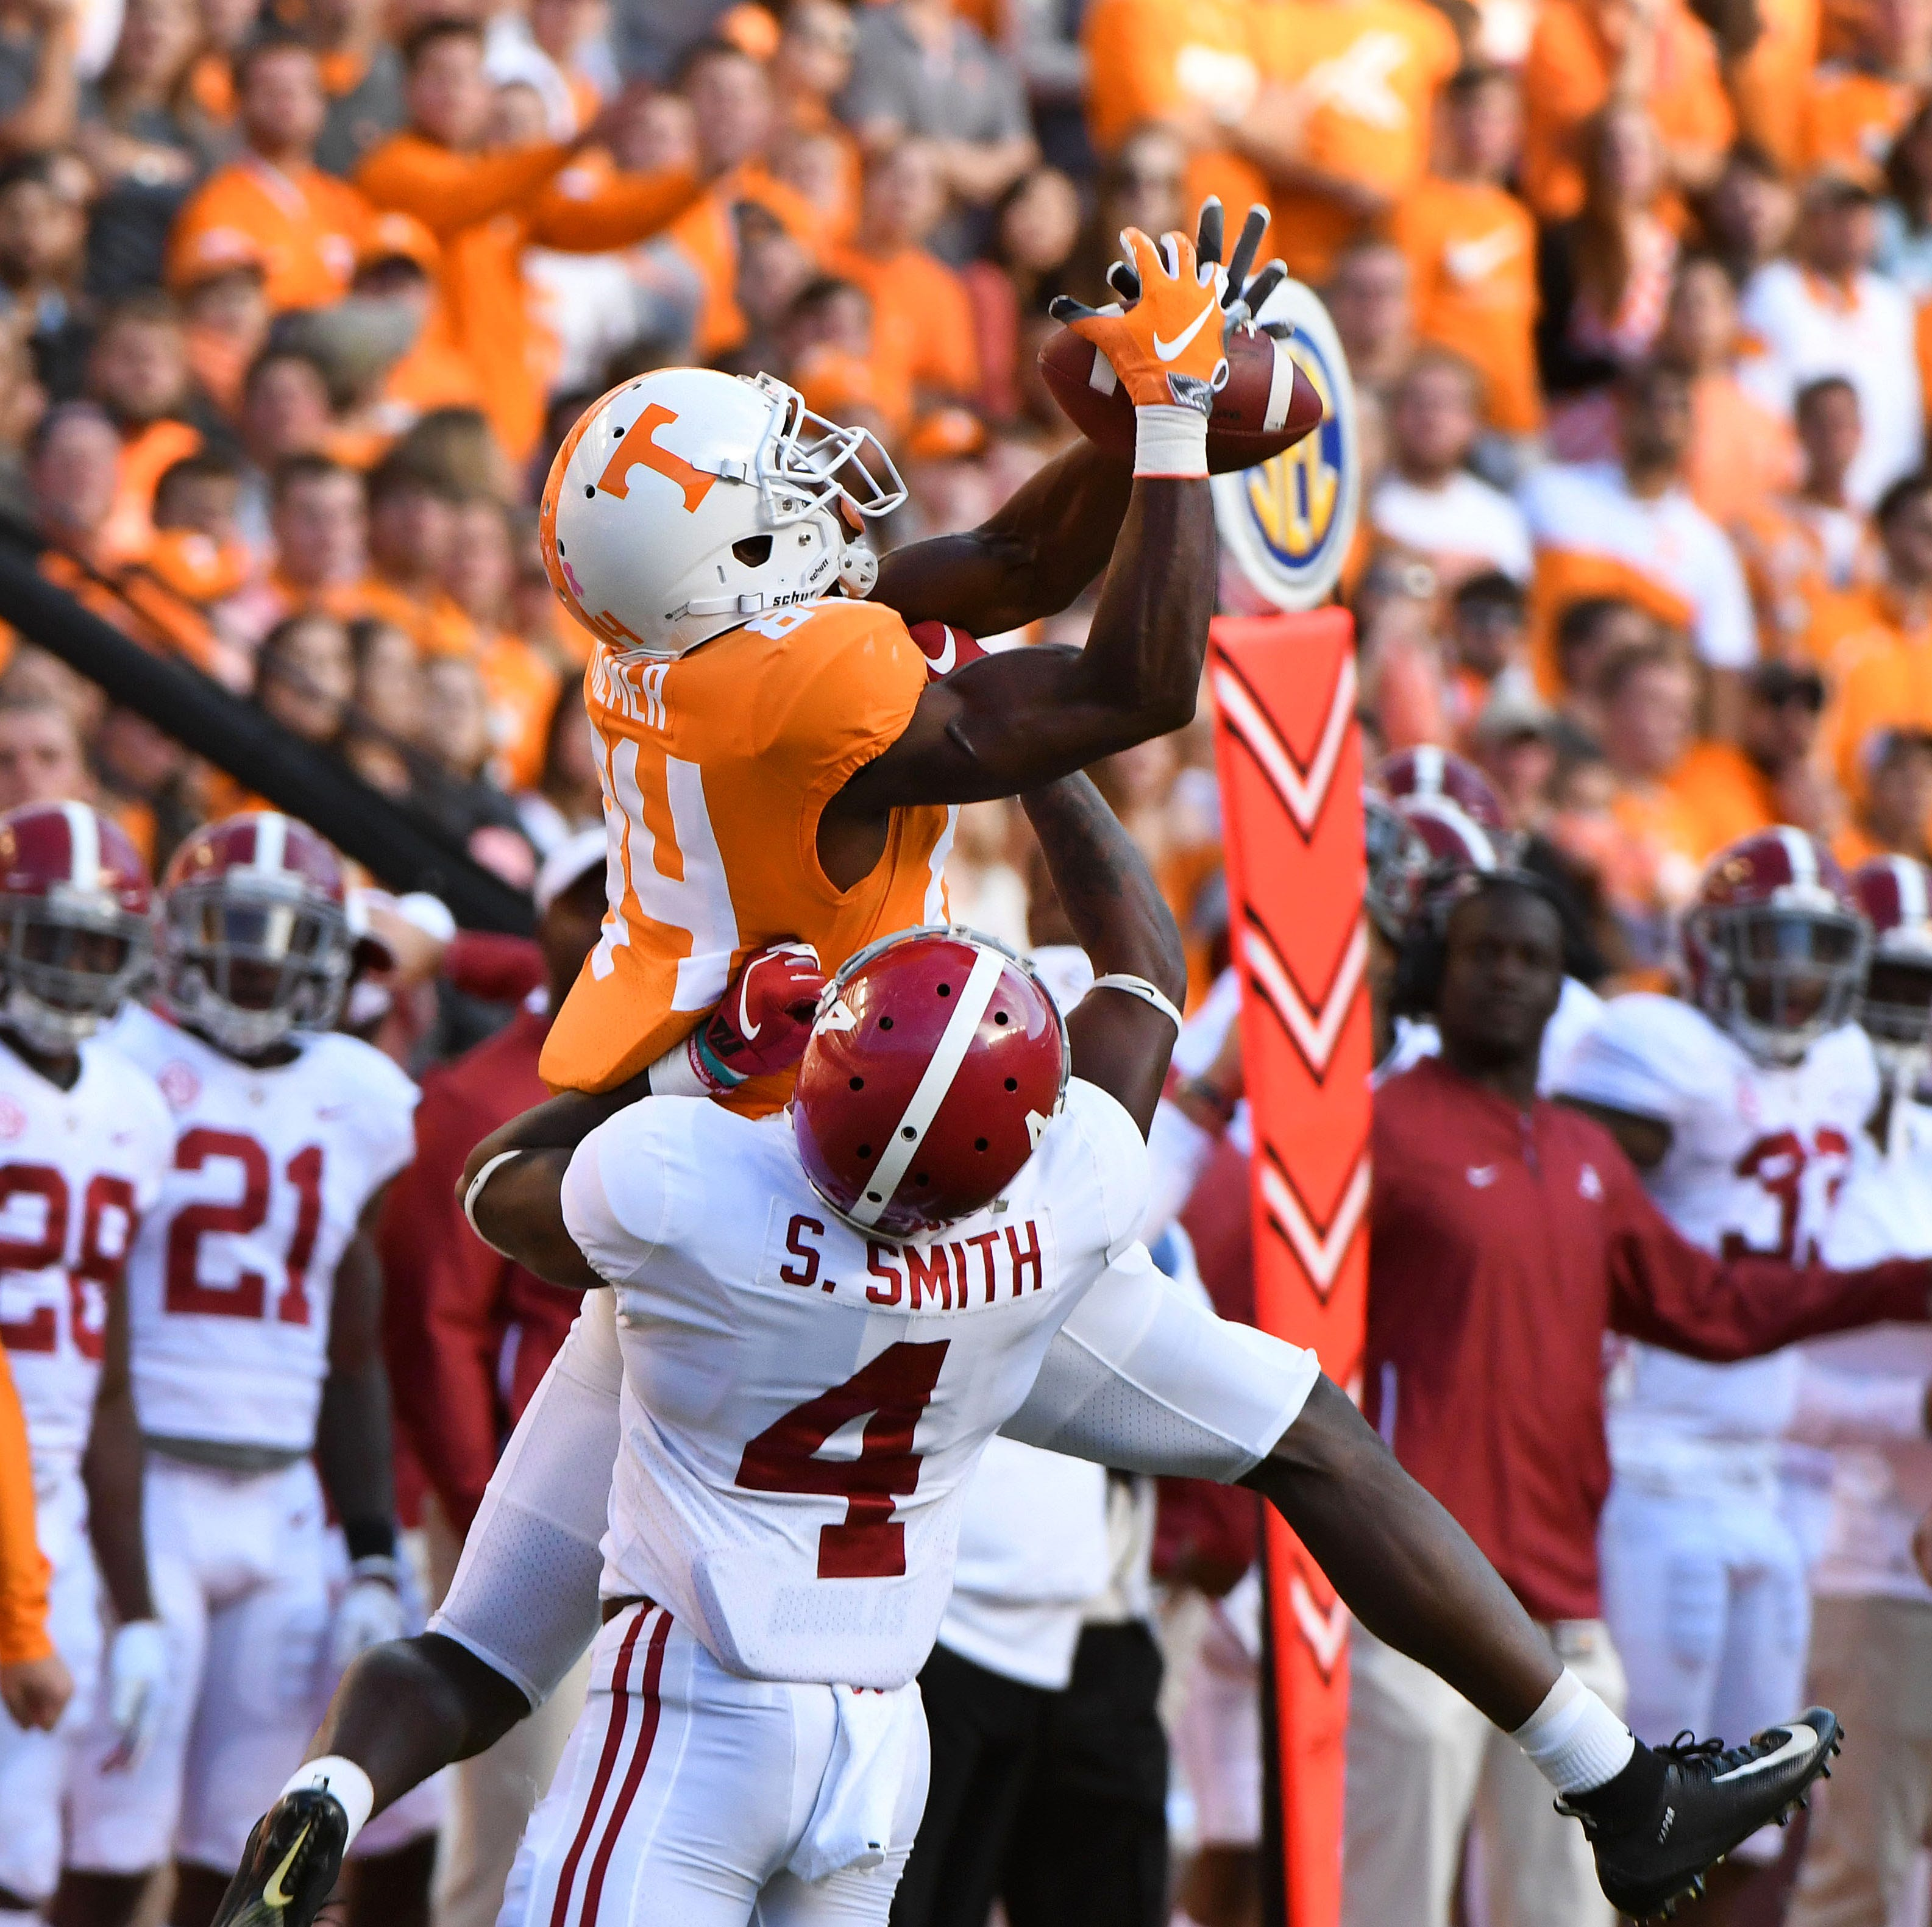 What's Tennessee's top rivalry? UT football vs Alabama or Vols basketball vs Kentucky?